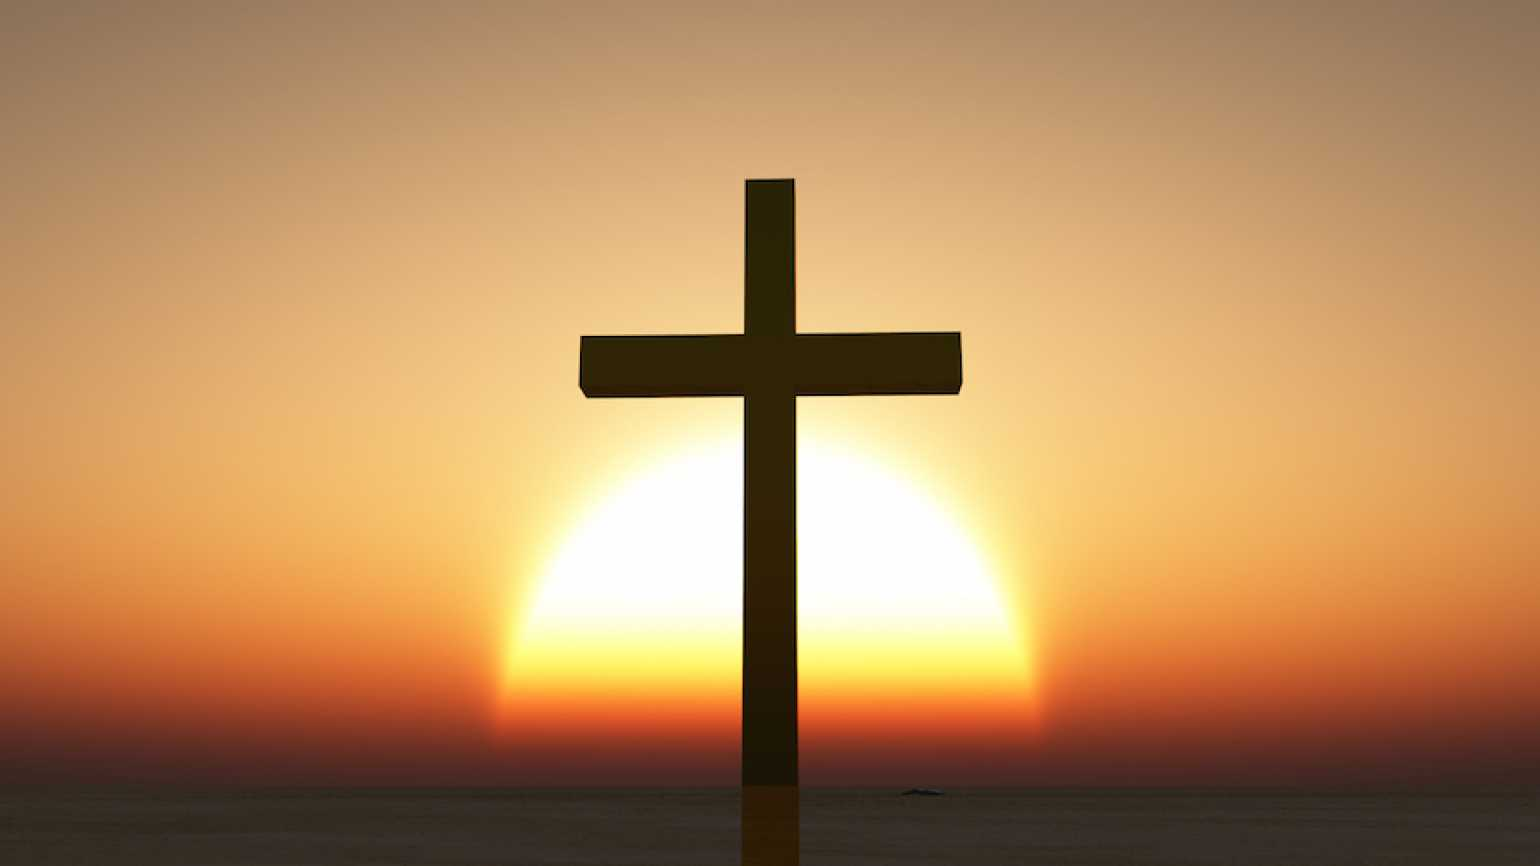 Cross at dawn. Thinkstock.